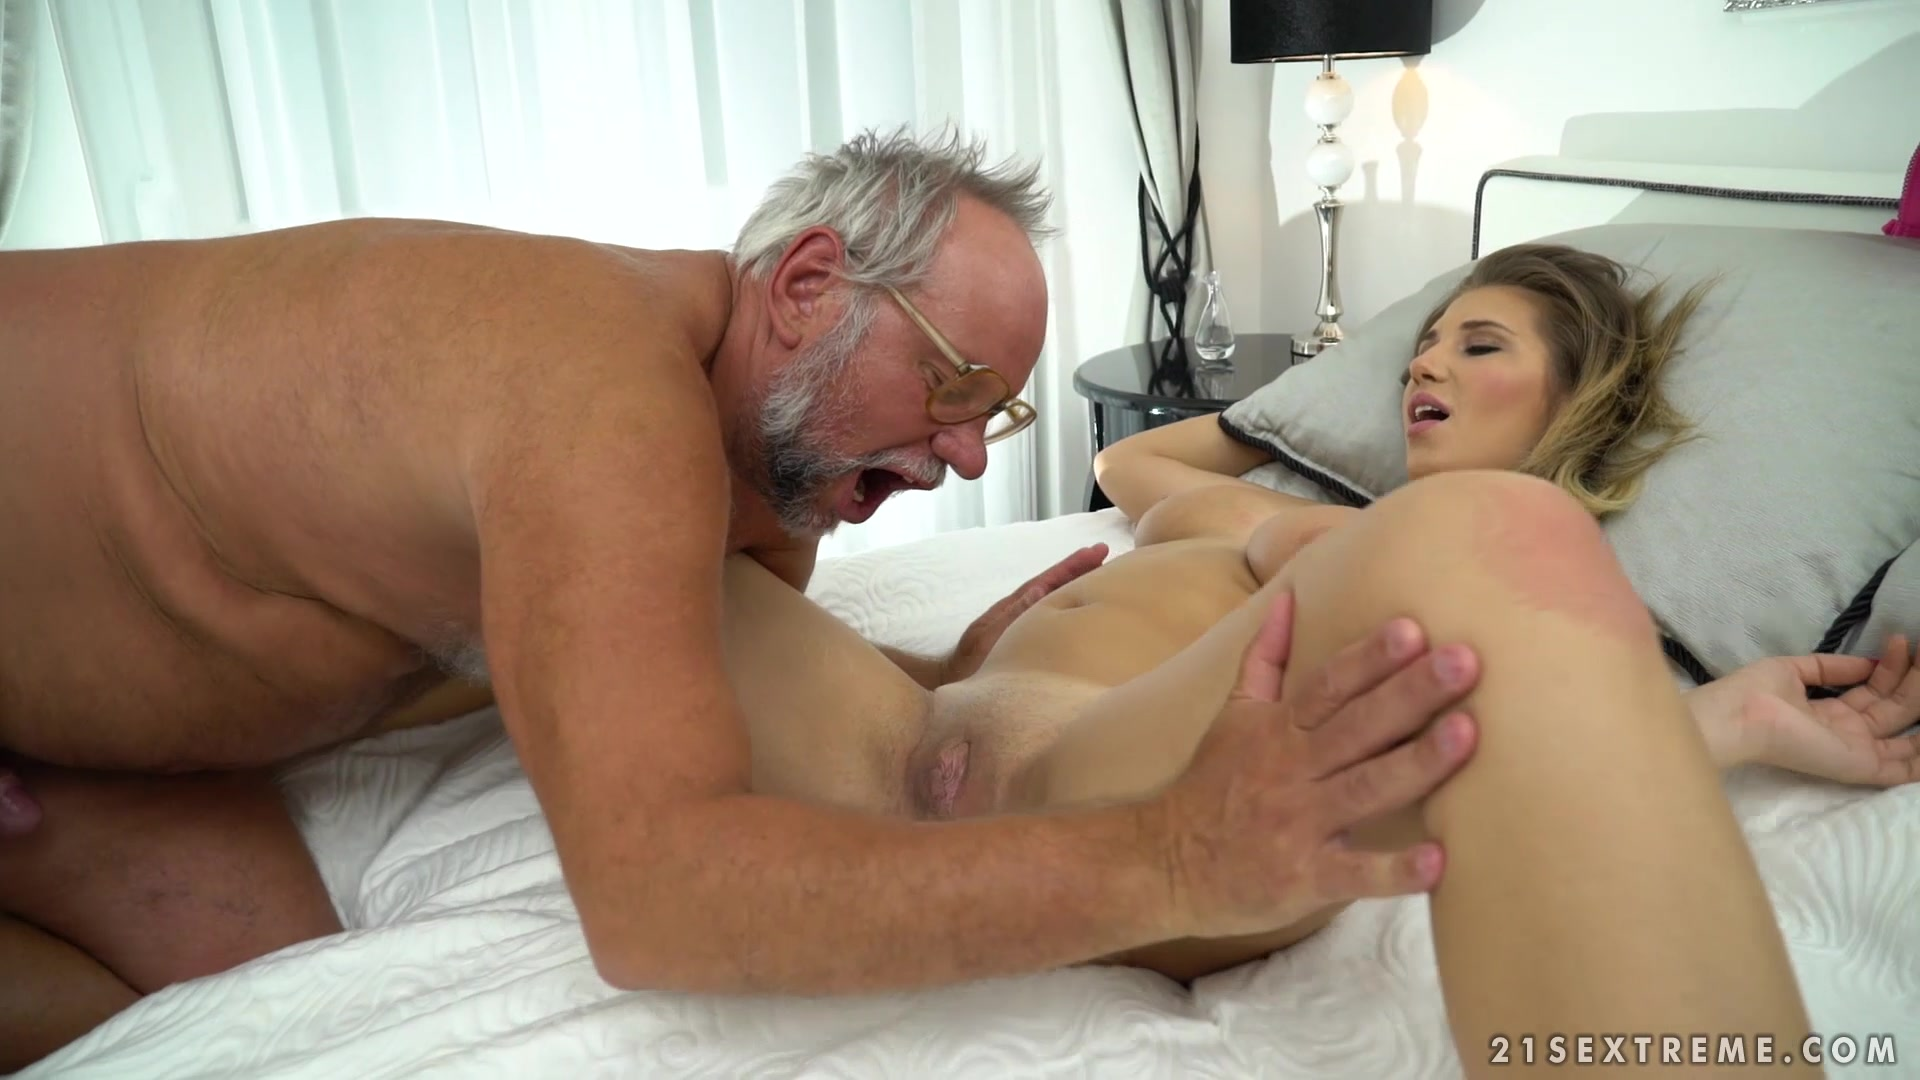 Gorgeous blondie squirts on old man's face and swallows his cum